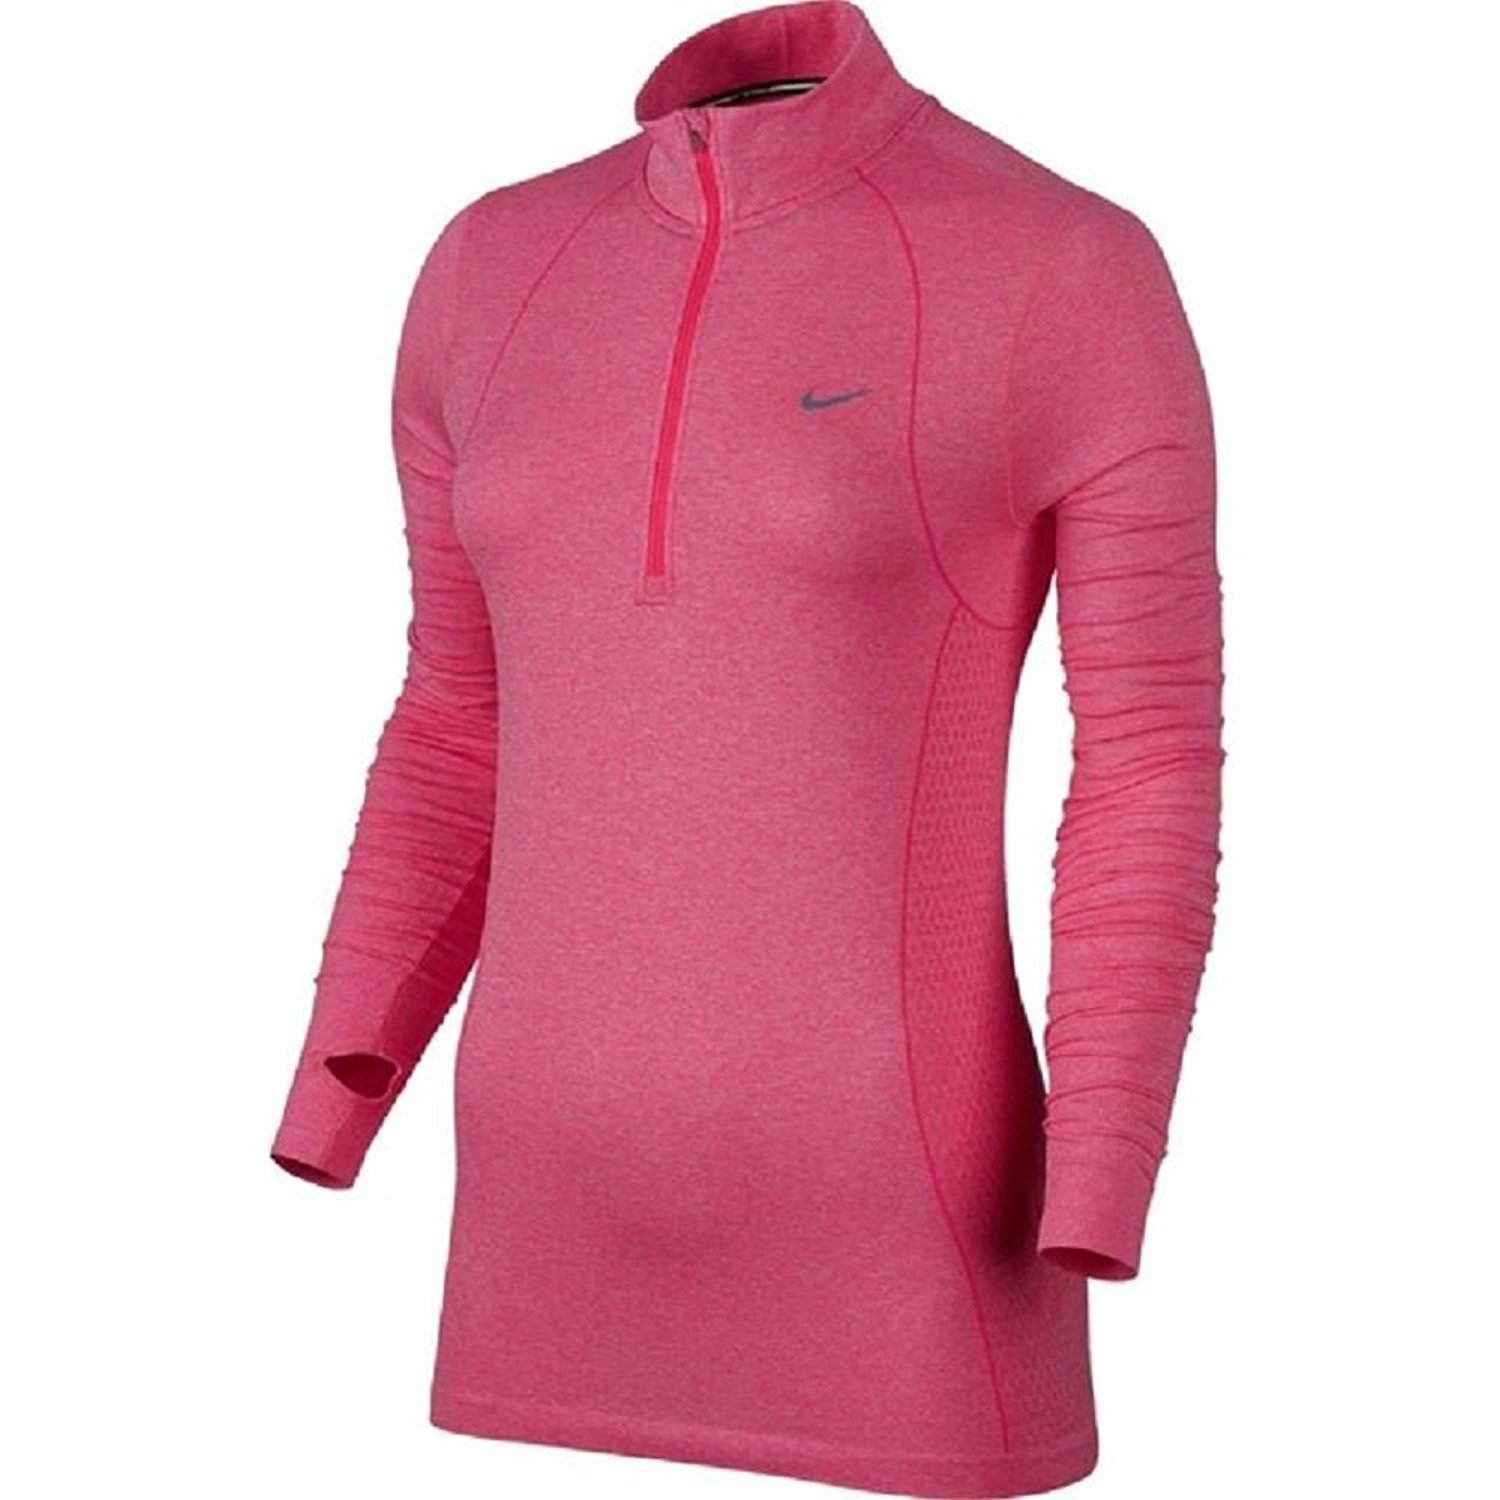 Nike Women's Dri-FIT Knit Long Sleeve Half Zip Running Shirt Hyper Punch 588534-660 (X-Large) by NIKE